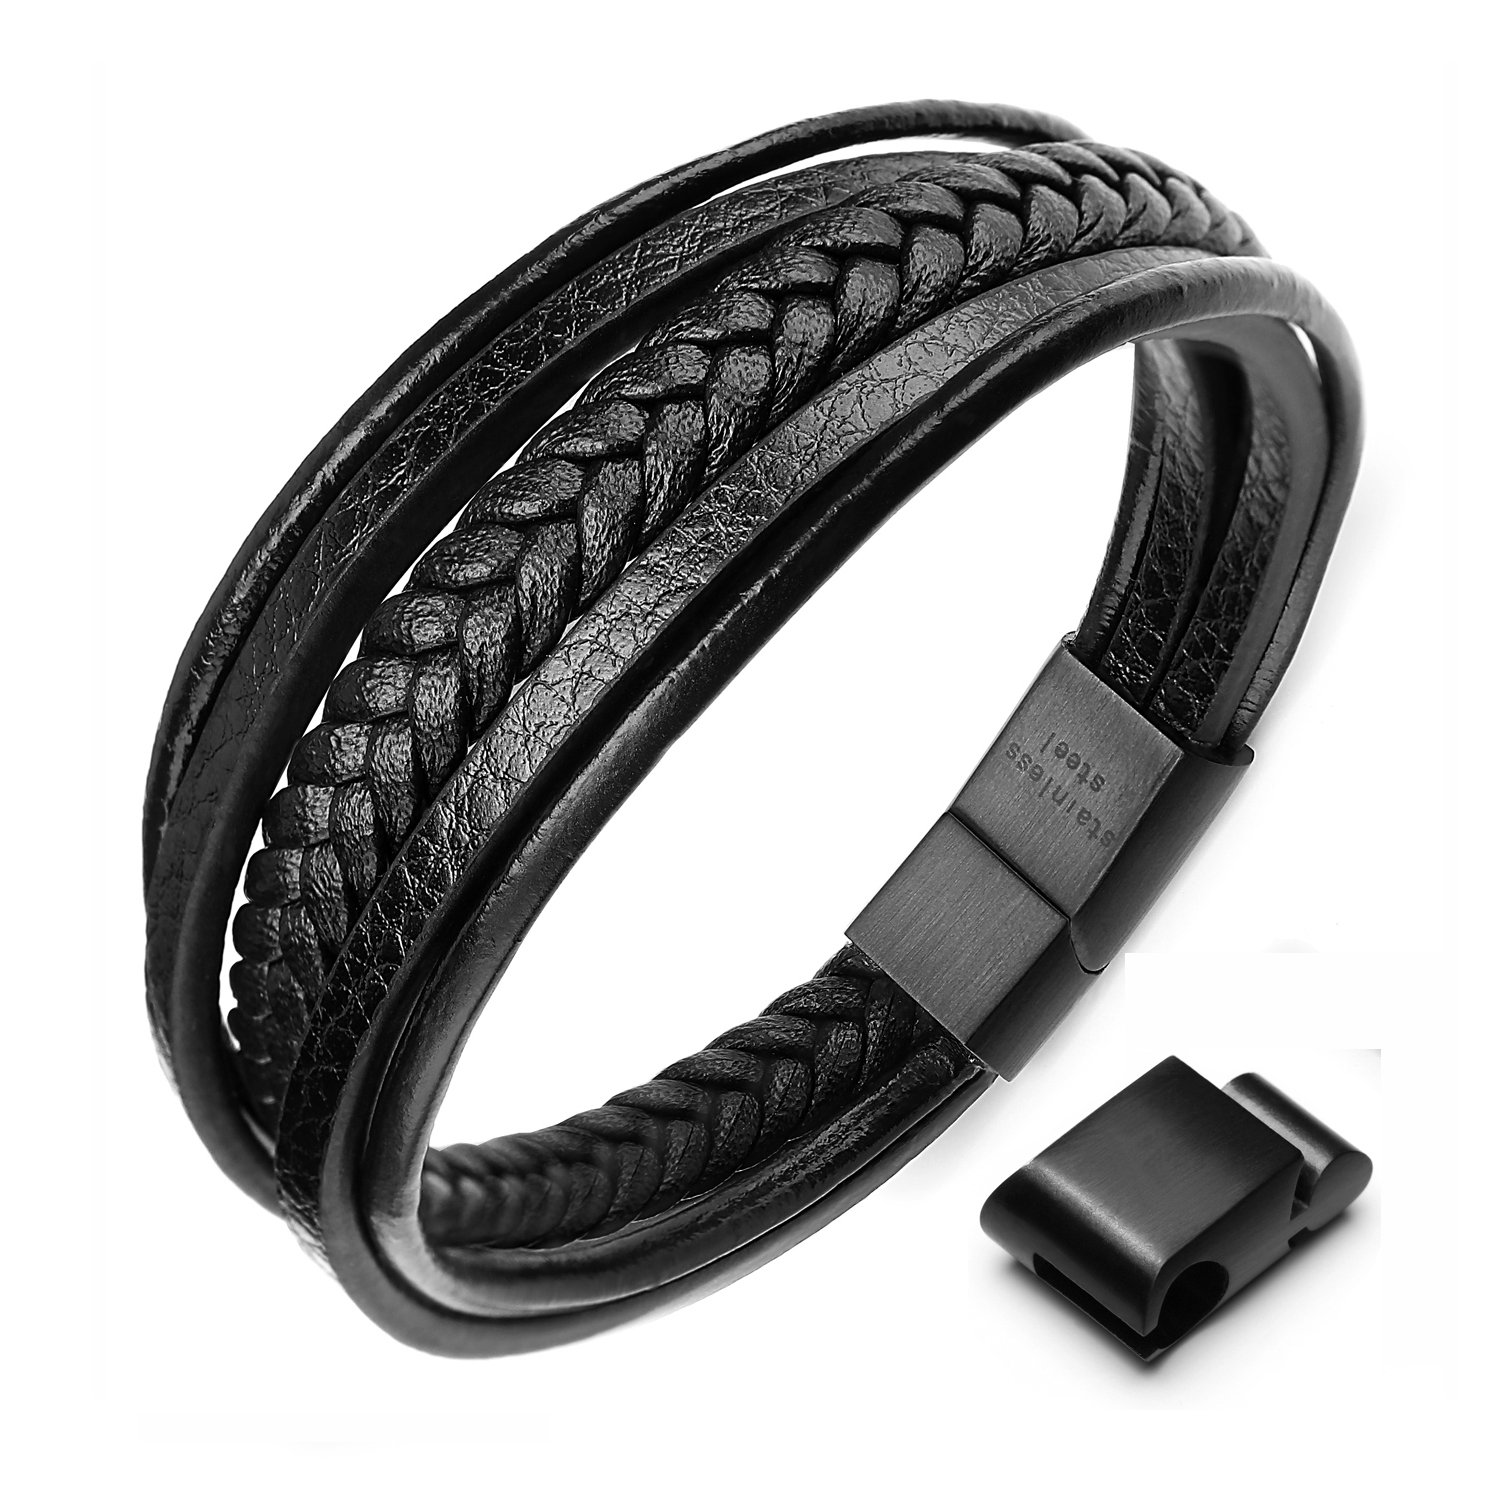 xikeo Leather Bracelet For Men, Mens leather Bracelet Cowhide Braided Multi-layer Wrap Mens Bracelet, 8.7'' 8.7'' (black) BMT170717eu-bl